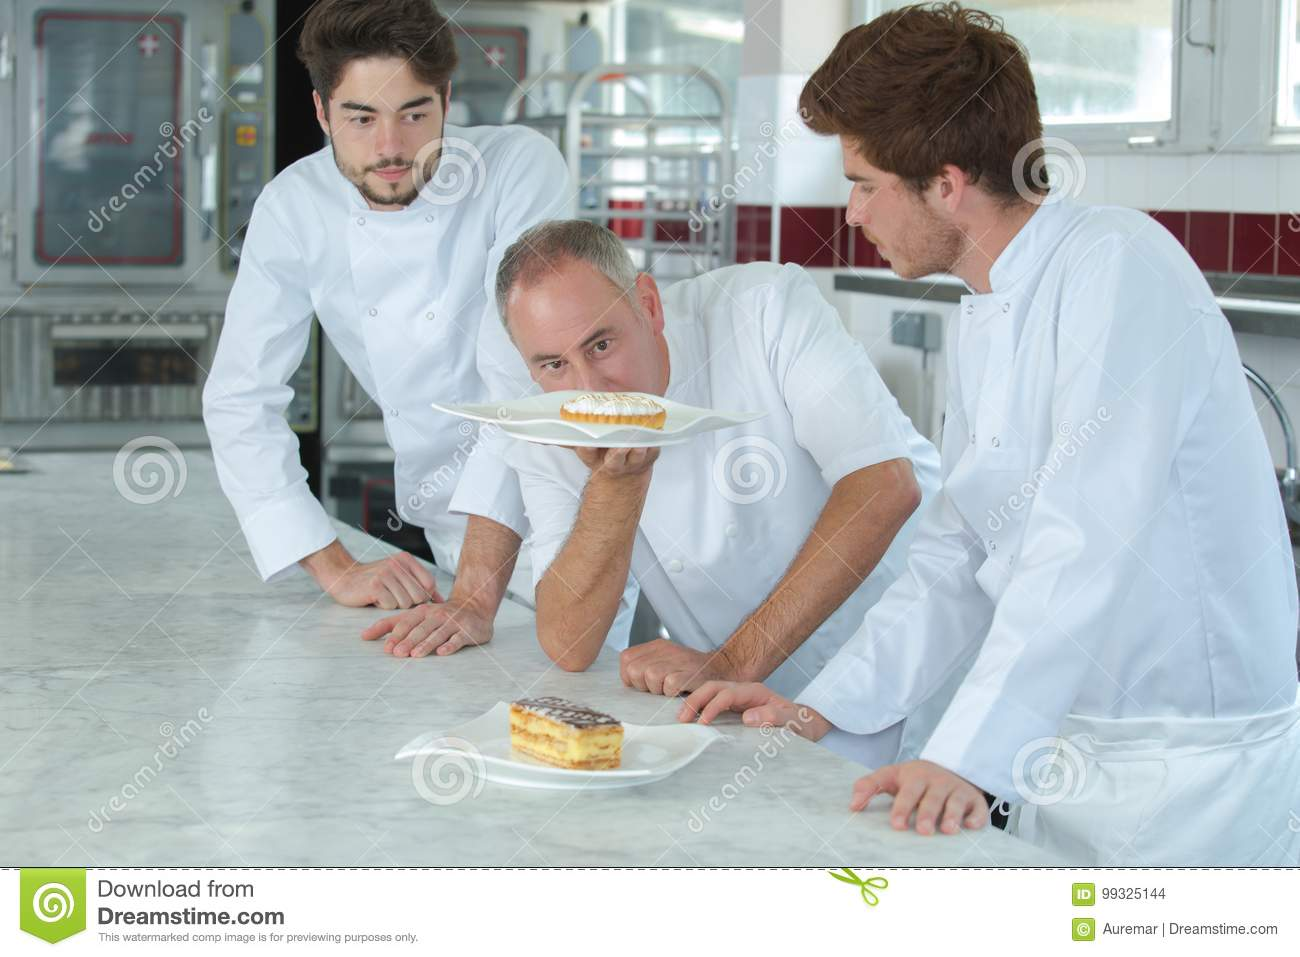 Chef checking assistants cakes